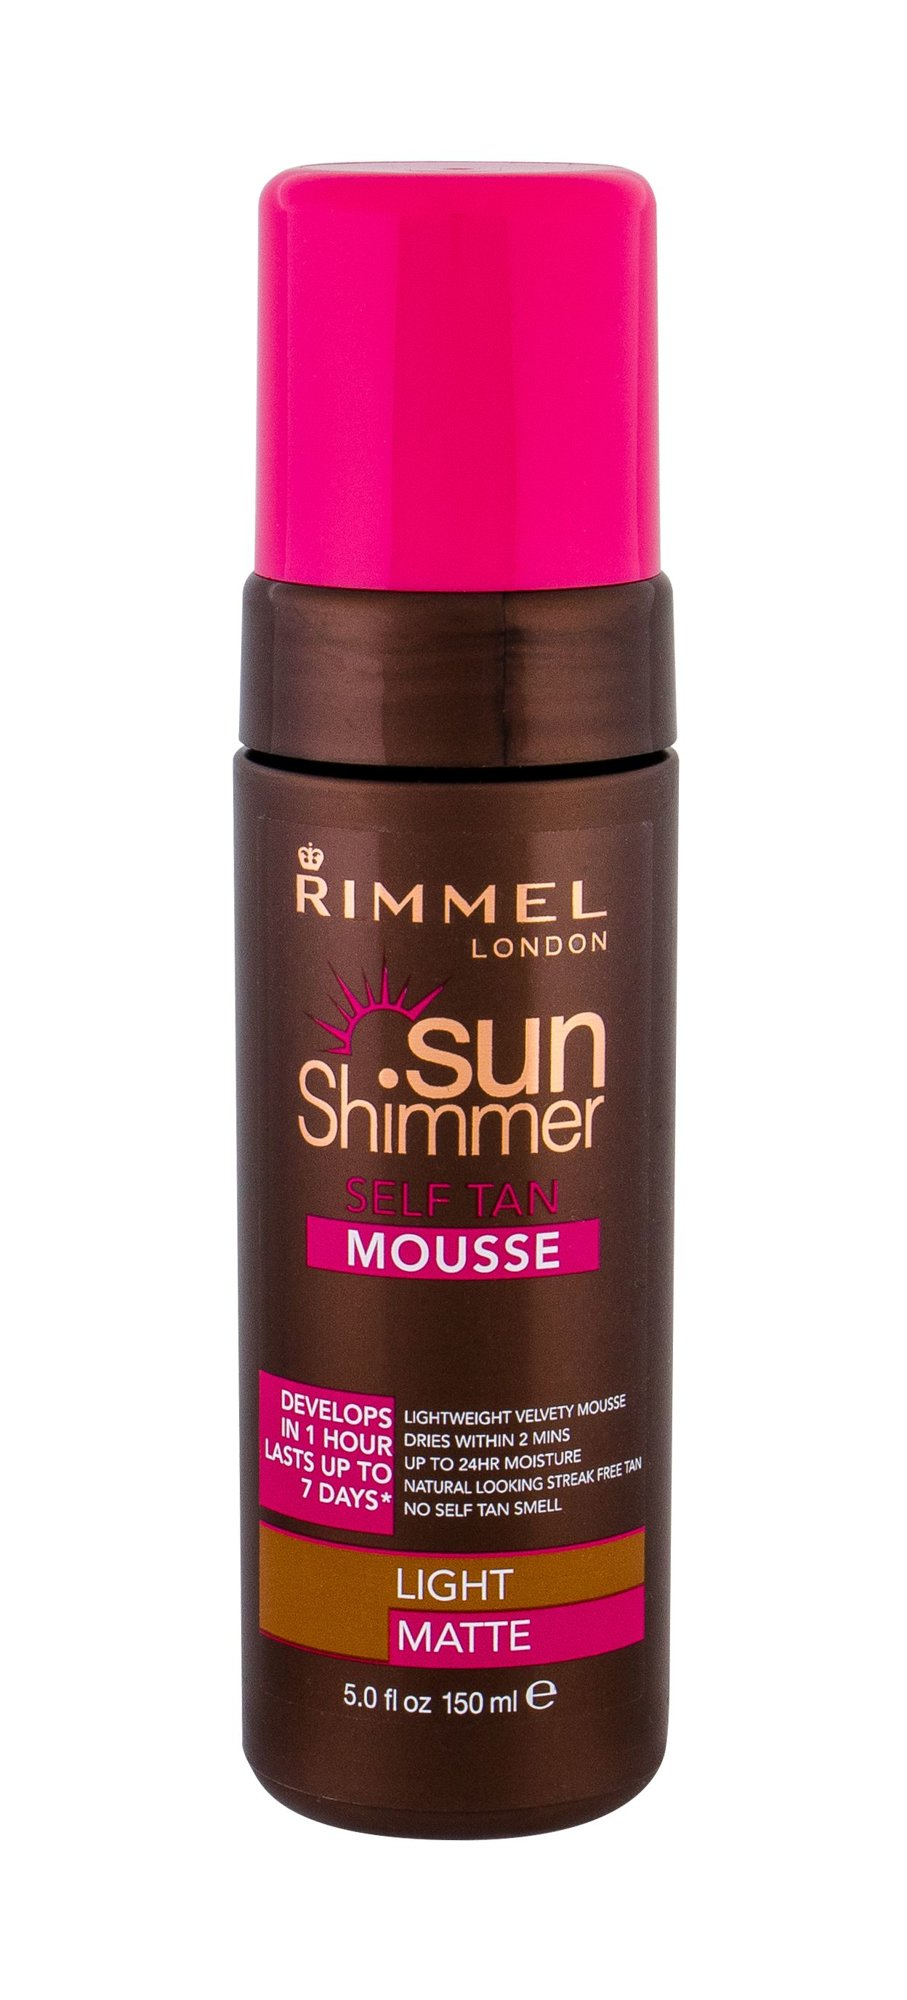 Rimmel London Sun Shimmer Self Tanning Product 150ml Light